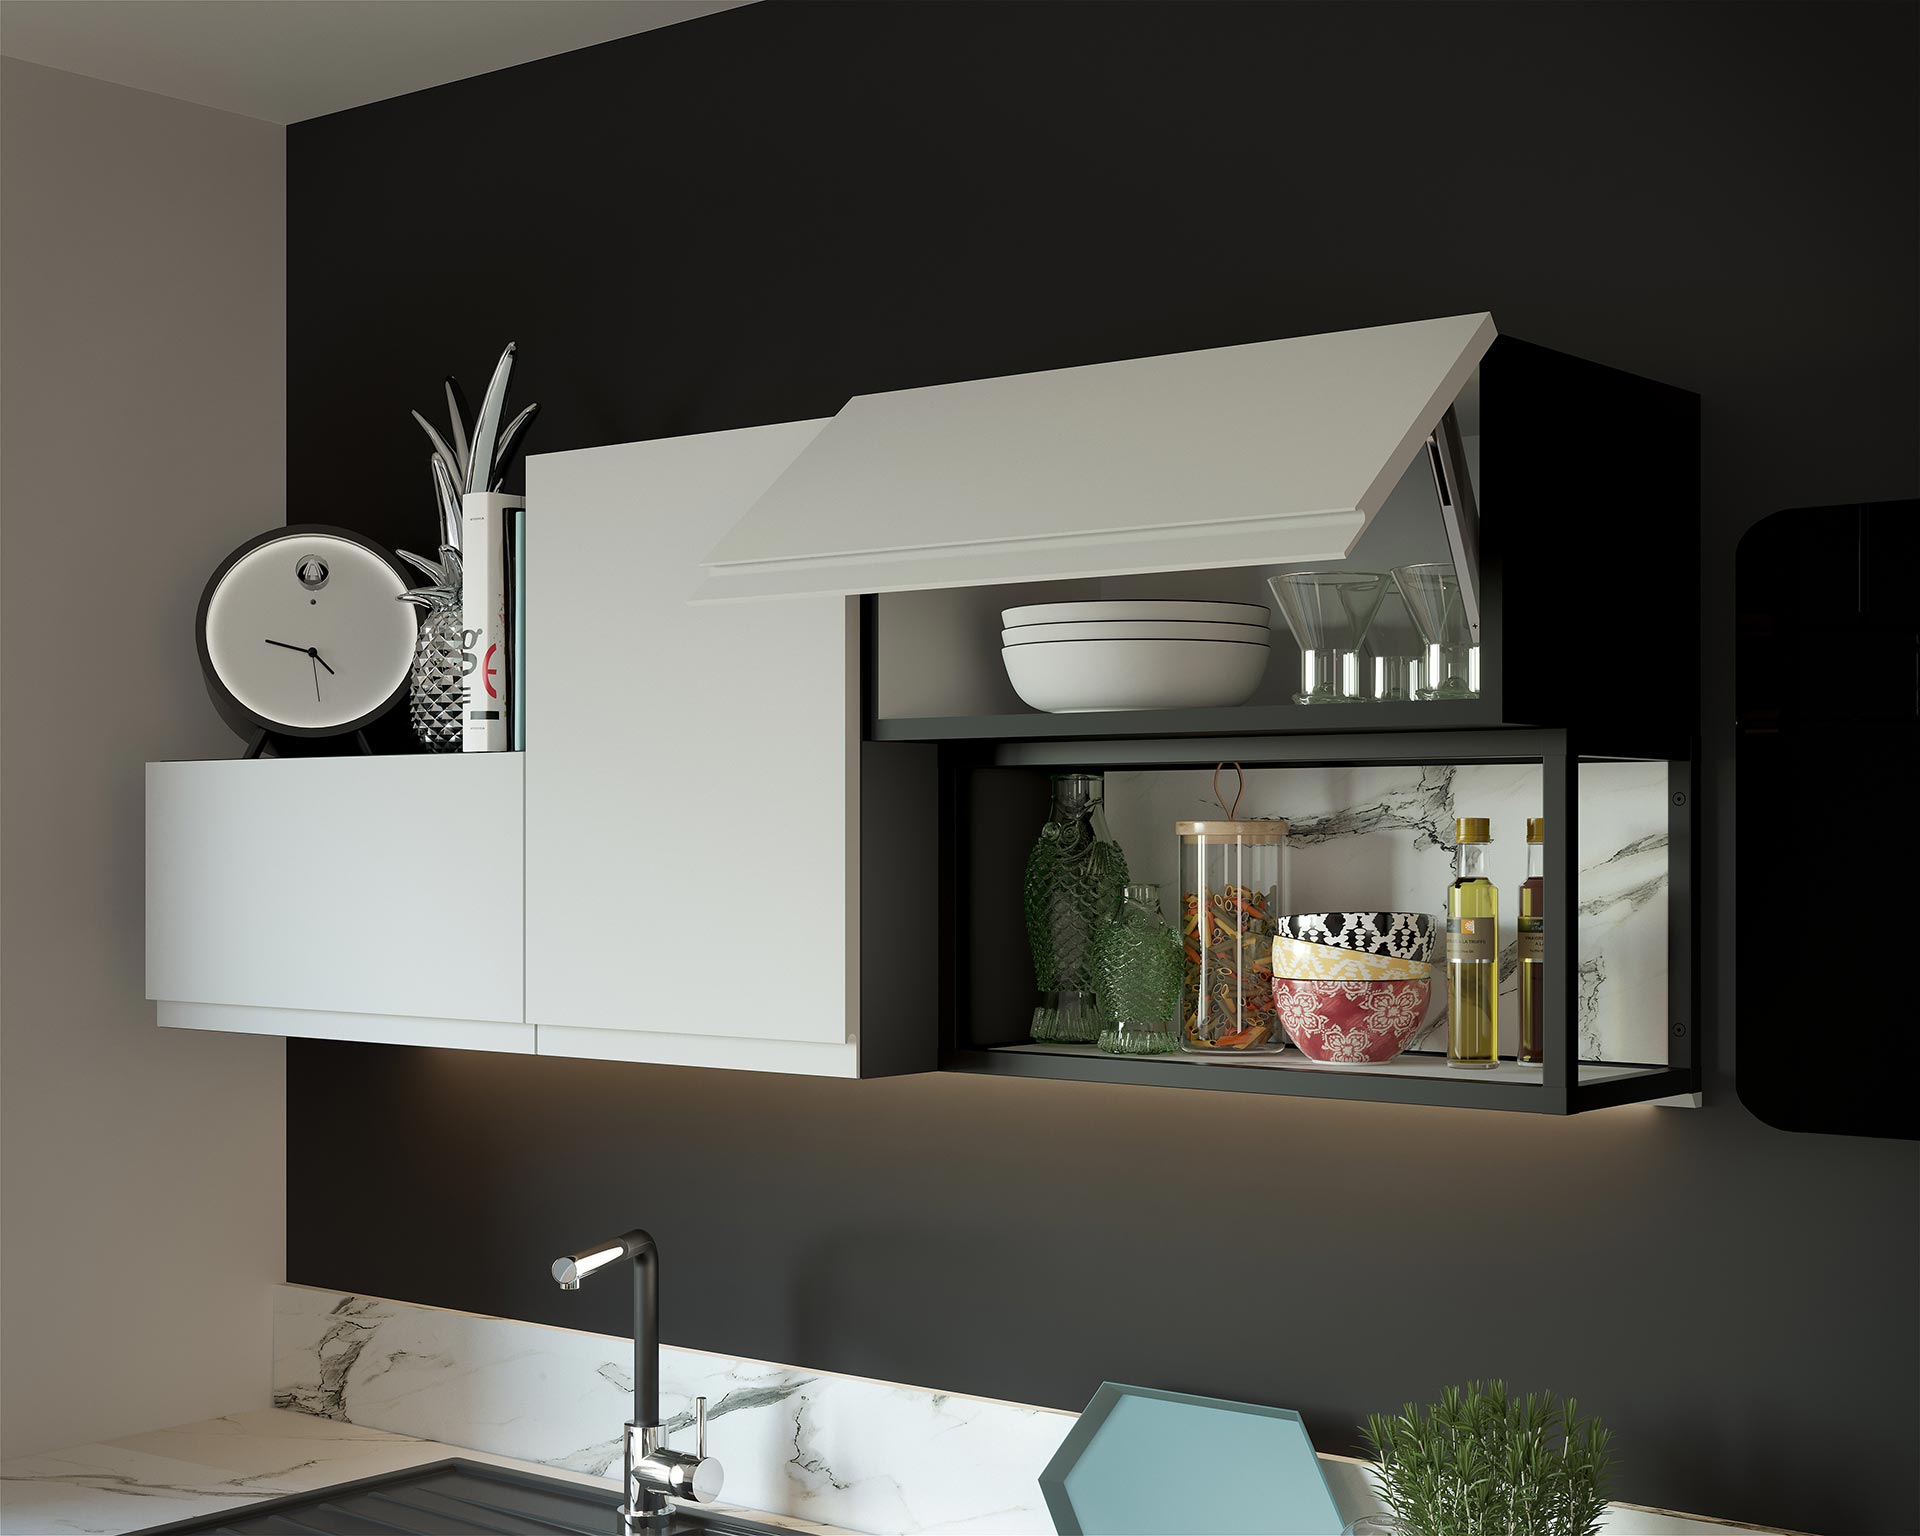 3D image of a kitchen furniture unit for an adverstising project